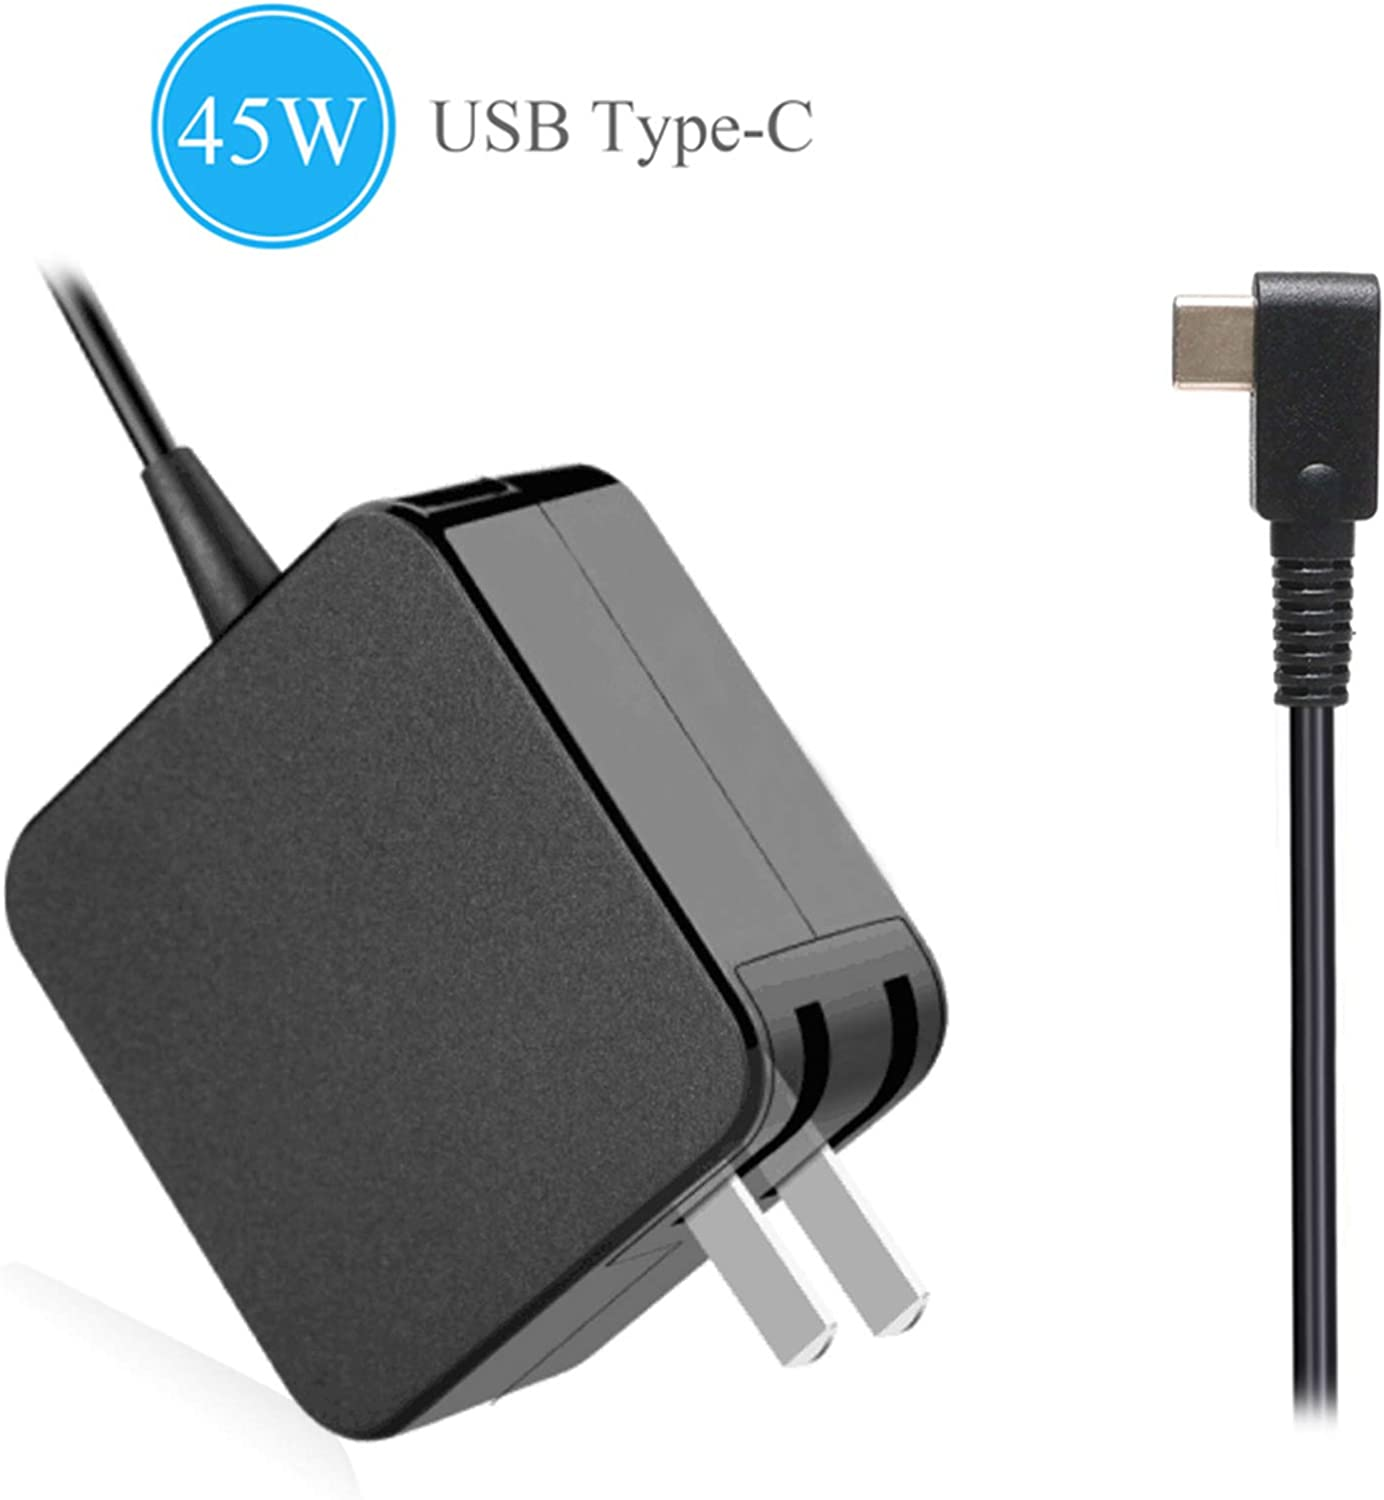 45W USB Type-C AC Adapter Laptop Wall Charger Replacement for HP Spectre x360 13 HP Pavillion X2; Lenovo ThinkPad X1 Carbon 2017 Yoga 910 720 13